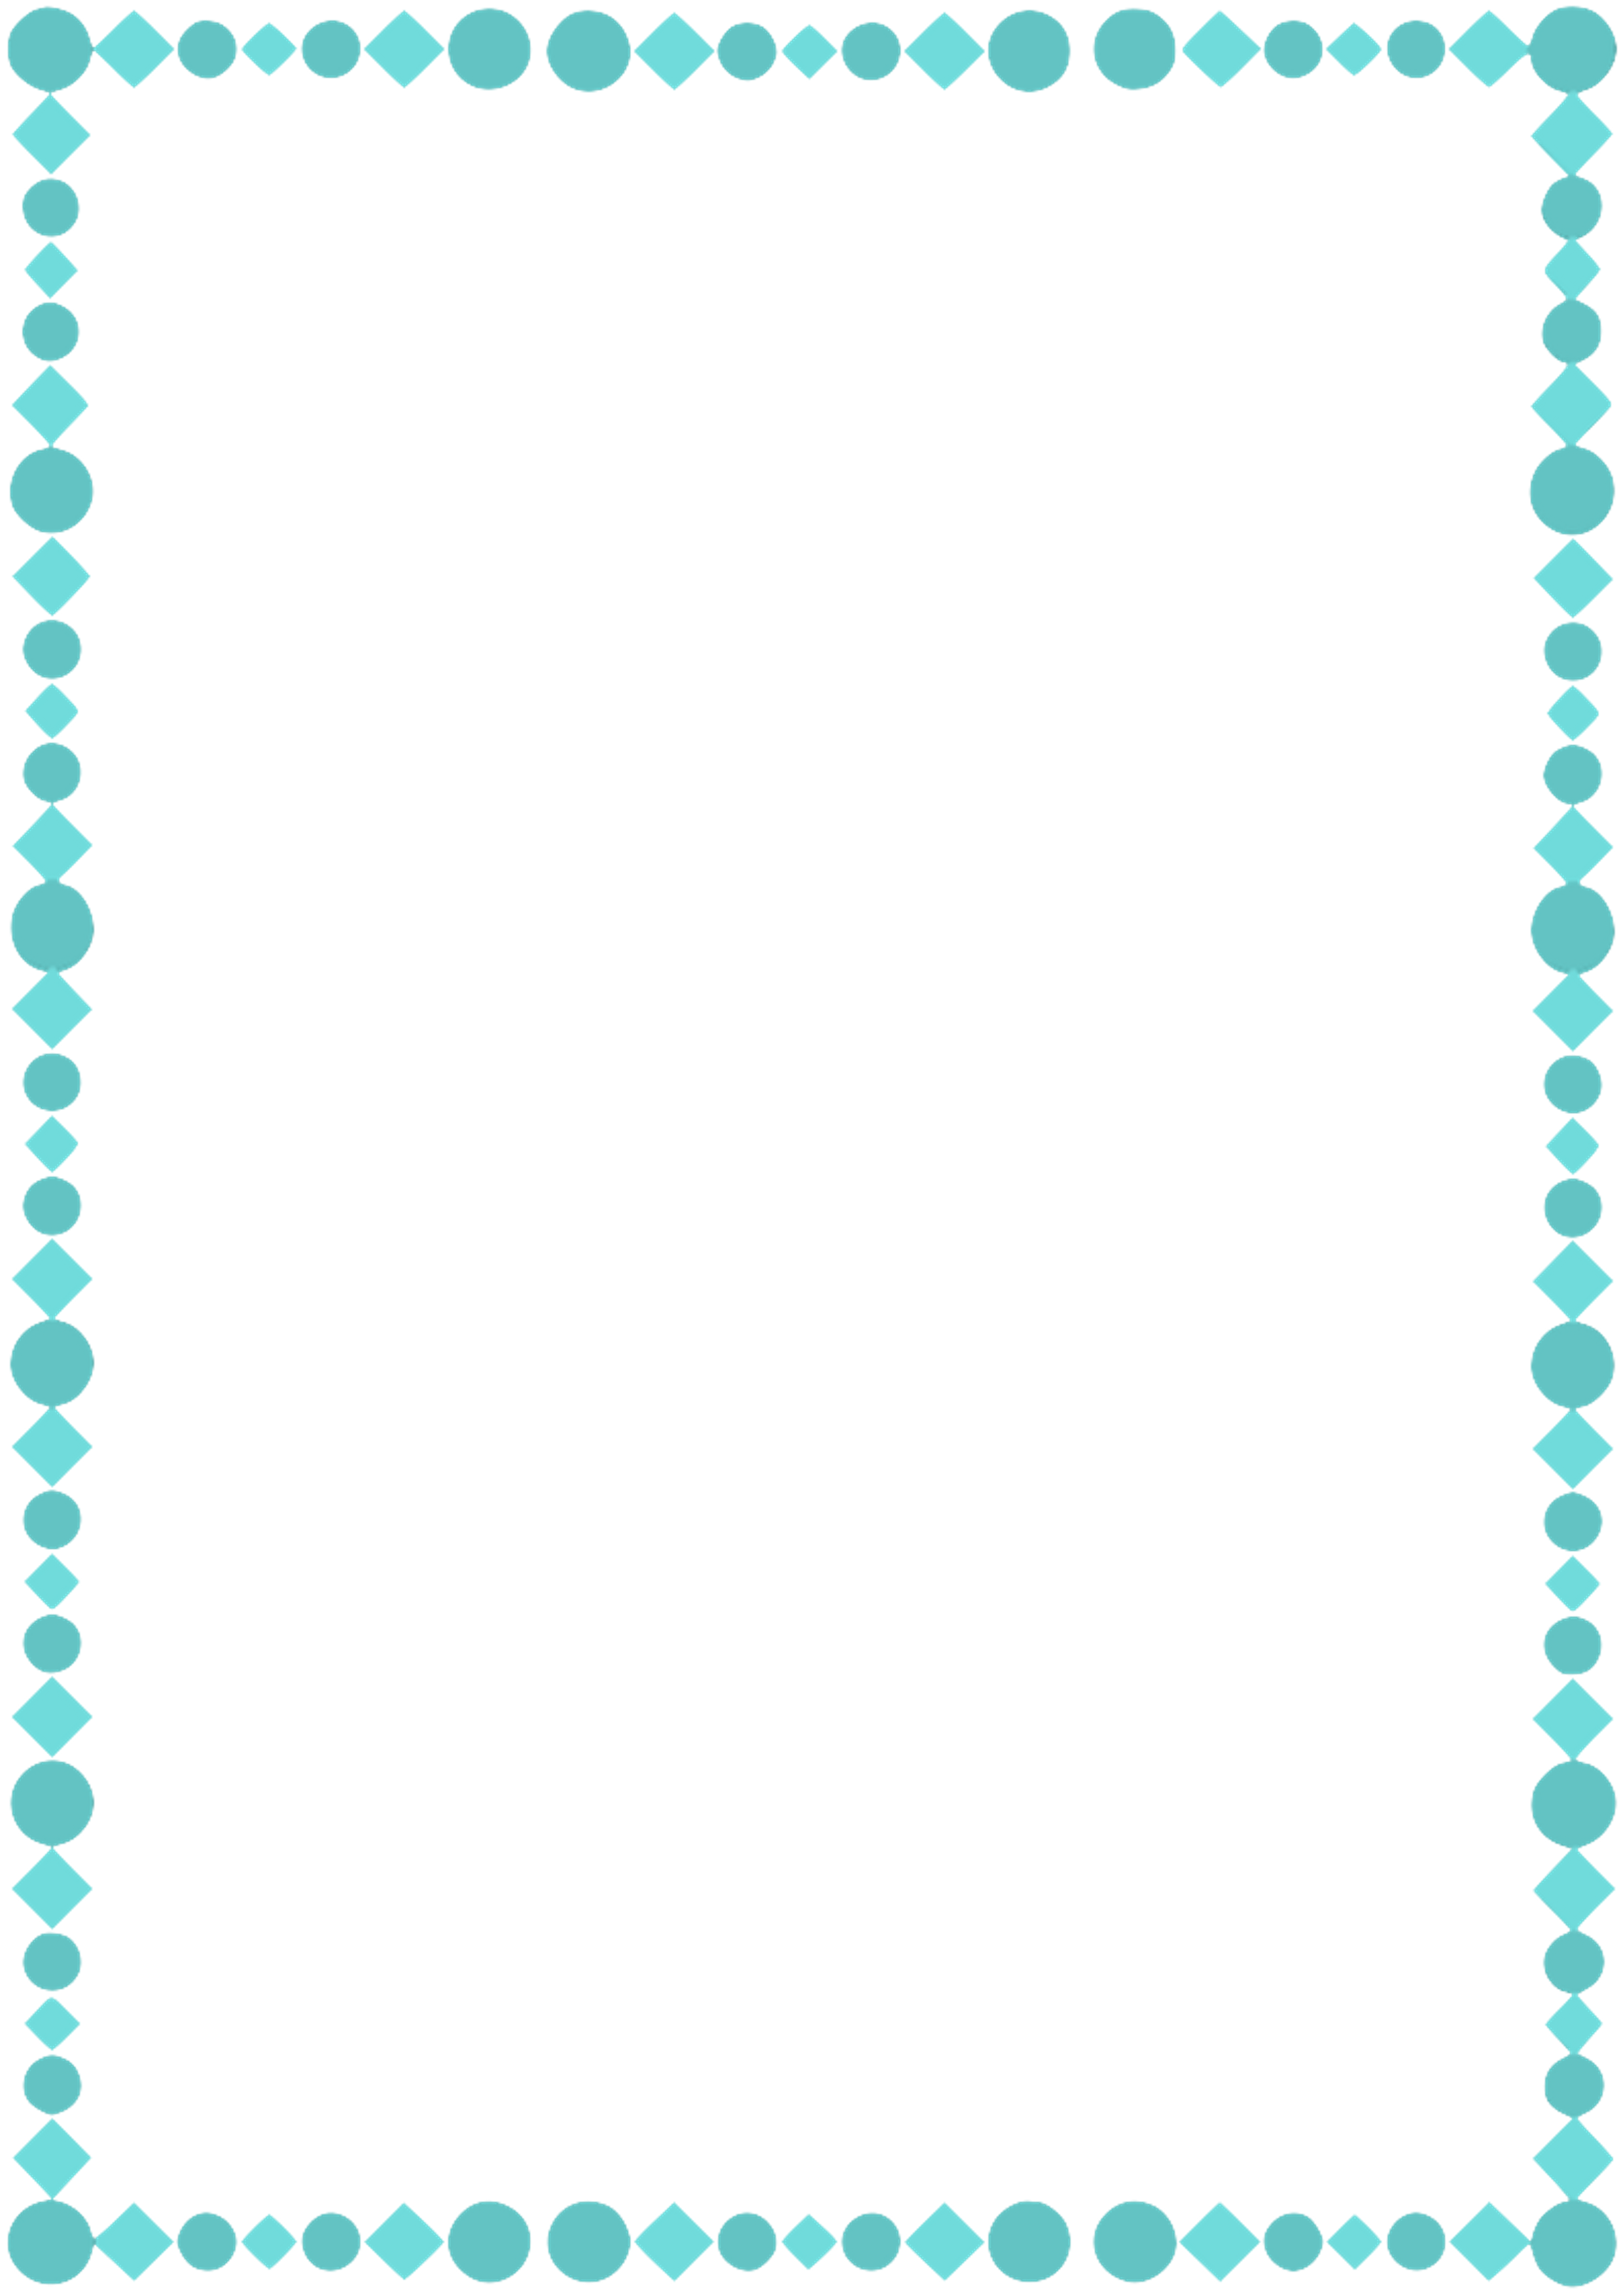 A4 Teal Page Border By Whimsinkal On Dev #267965 - PNG